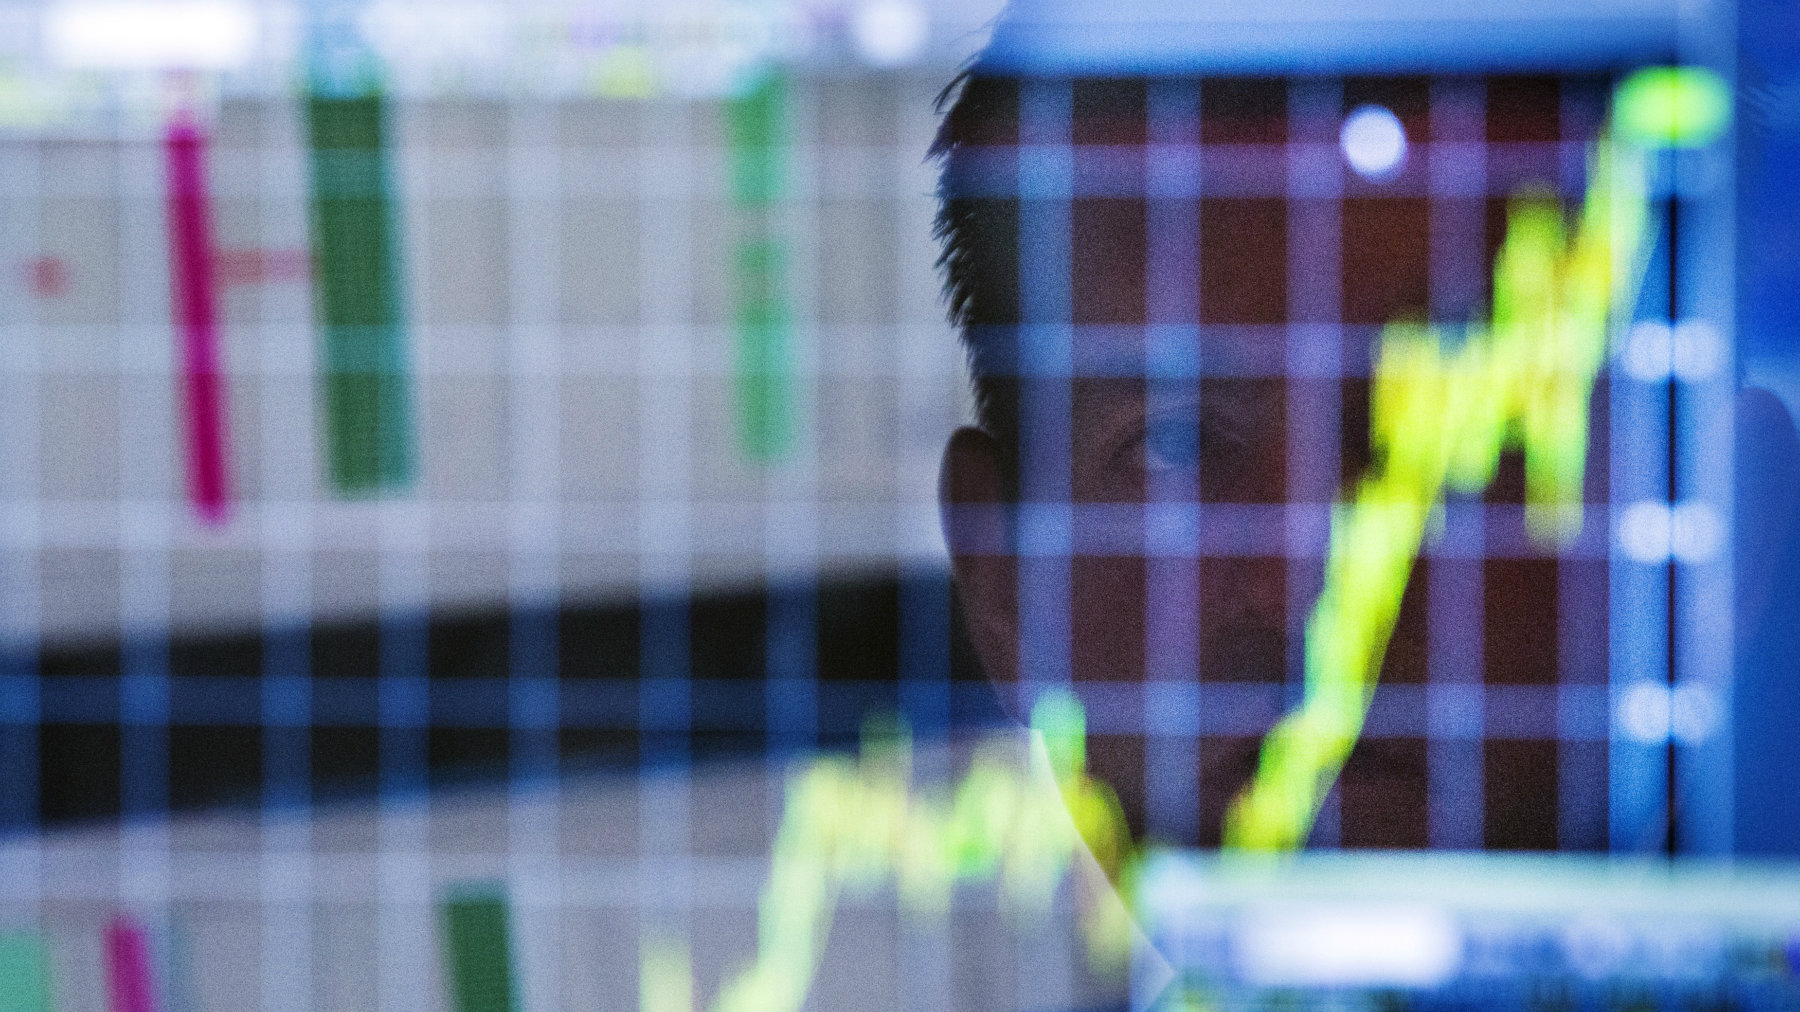 A trader looks up at a chart on his computer screen while working on the floor of the New York Stock Exchange.